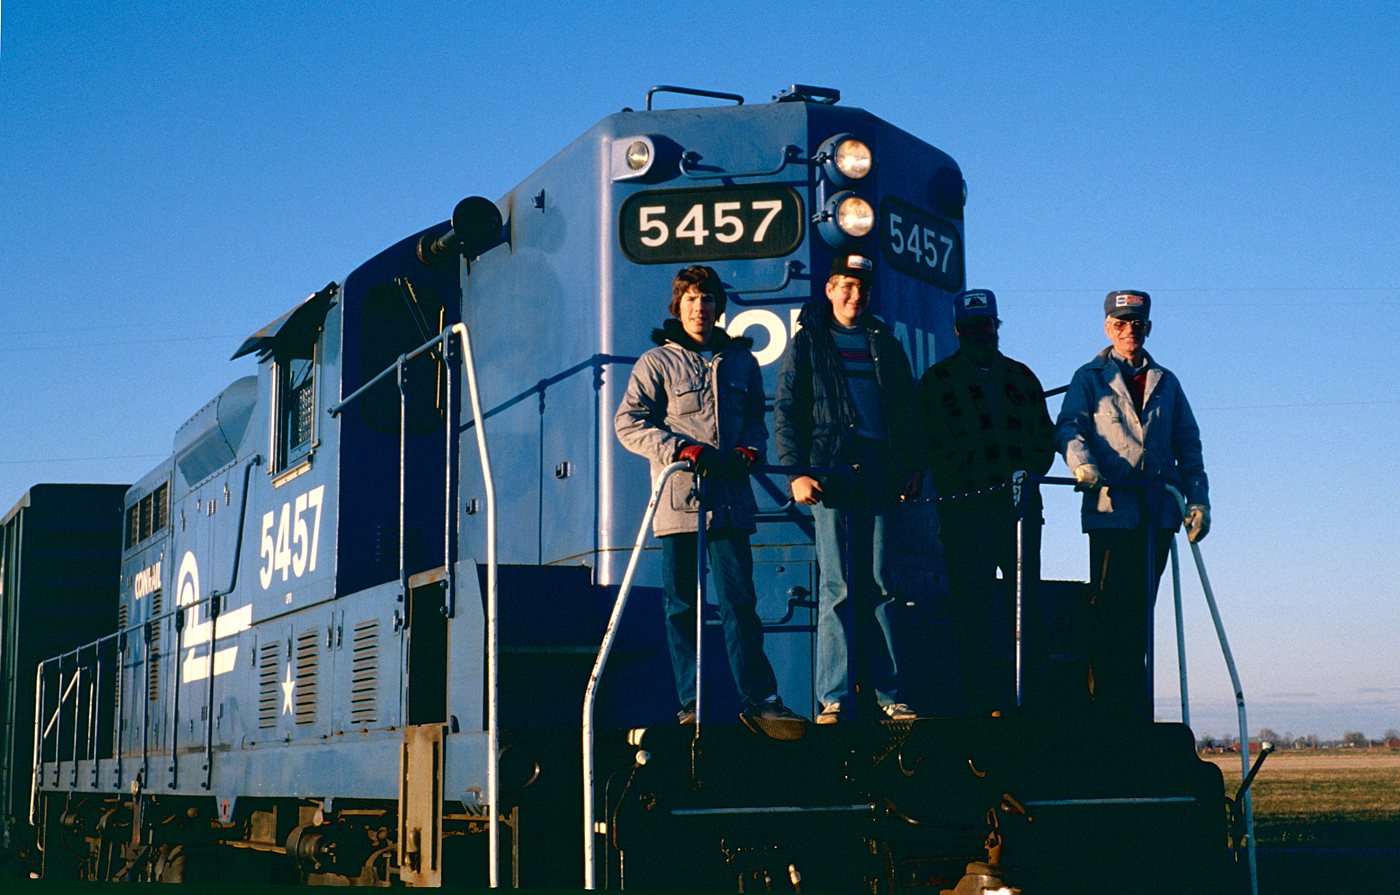 Conrail GP-8 #5457 at Palmyra, Michigan on 10 November 1980